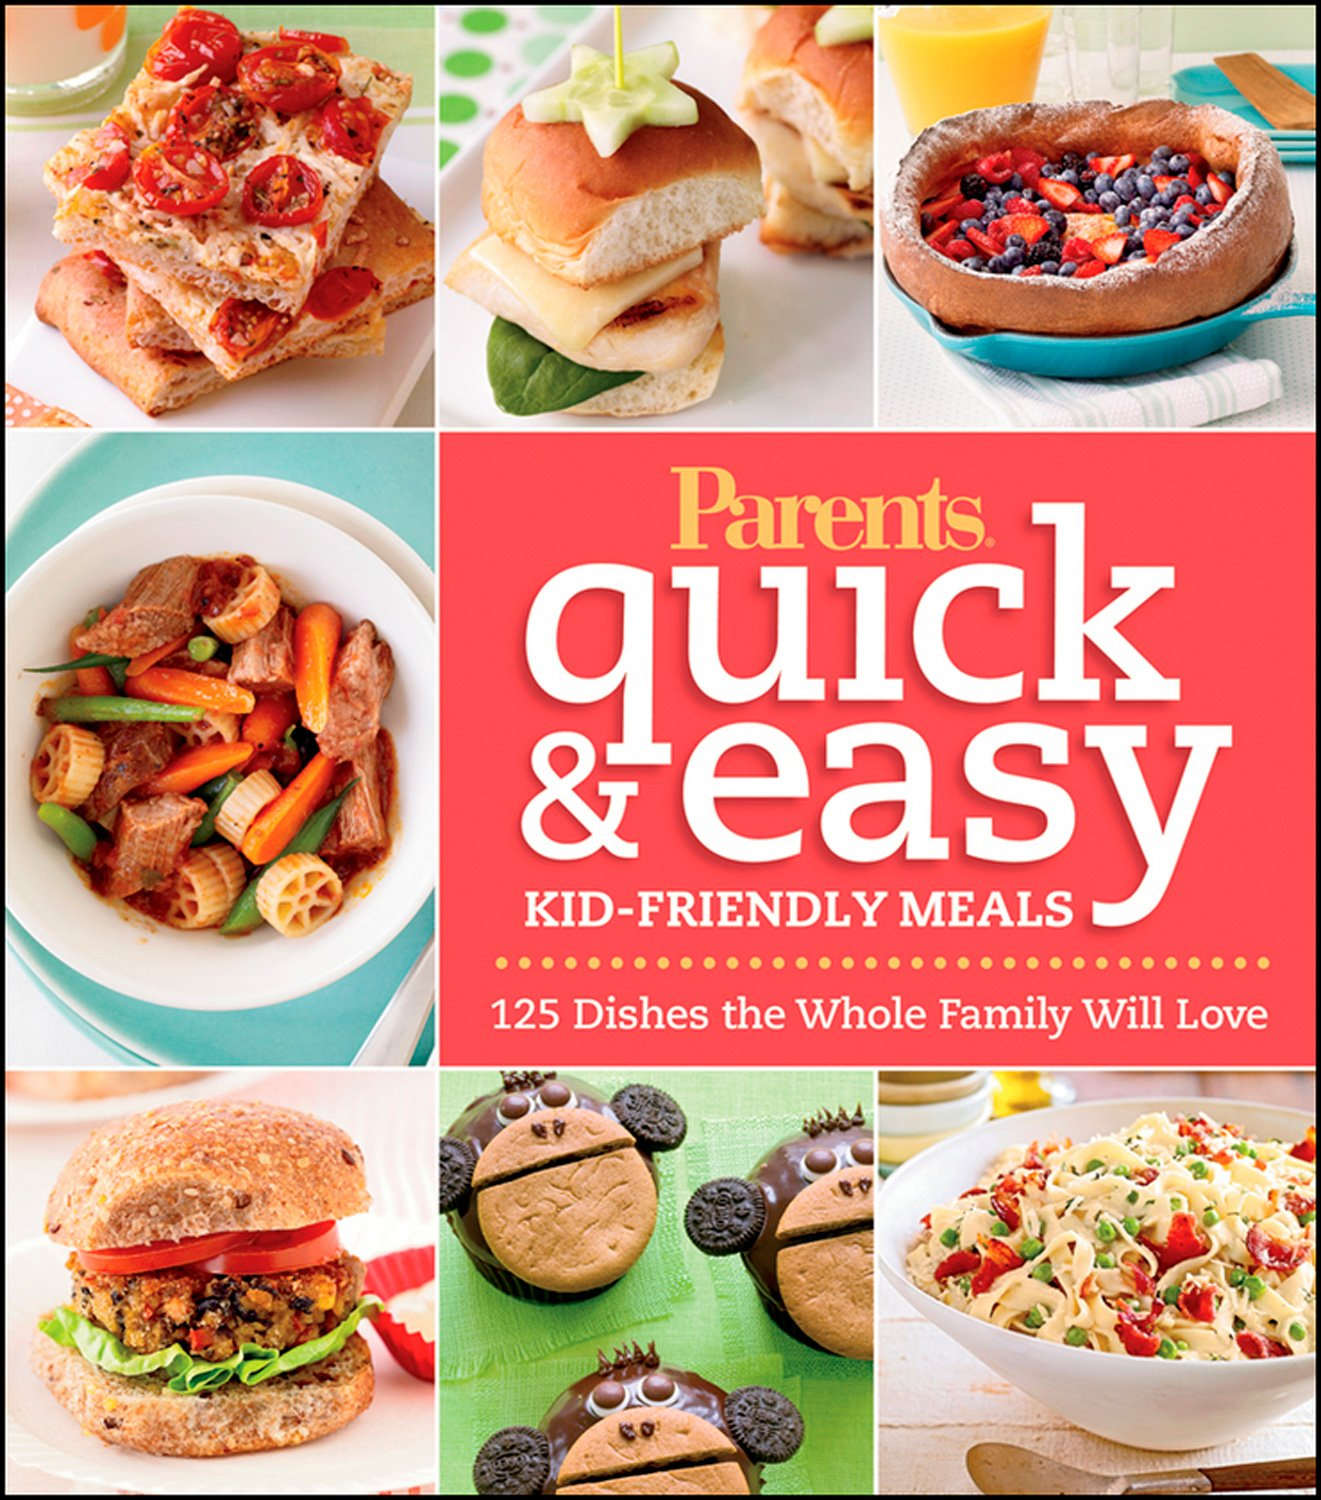 Download Parents Magazine Quick and Easy Kid-Friendly Meals: 100+ Recipes Your Whole Family Will Love PDF